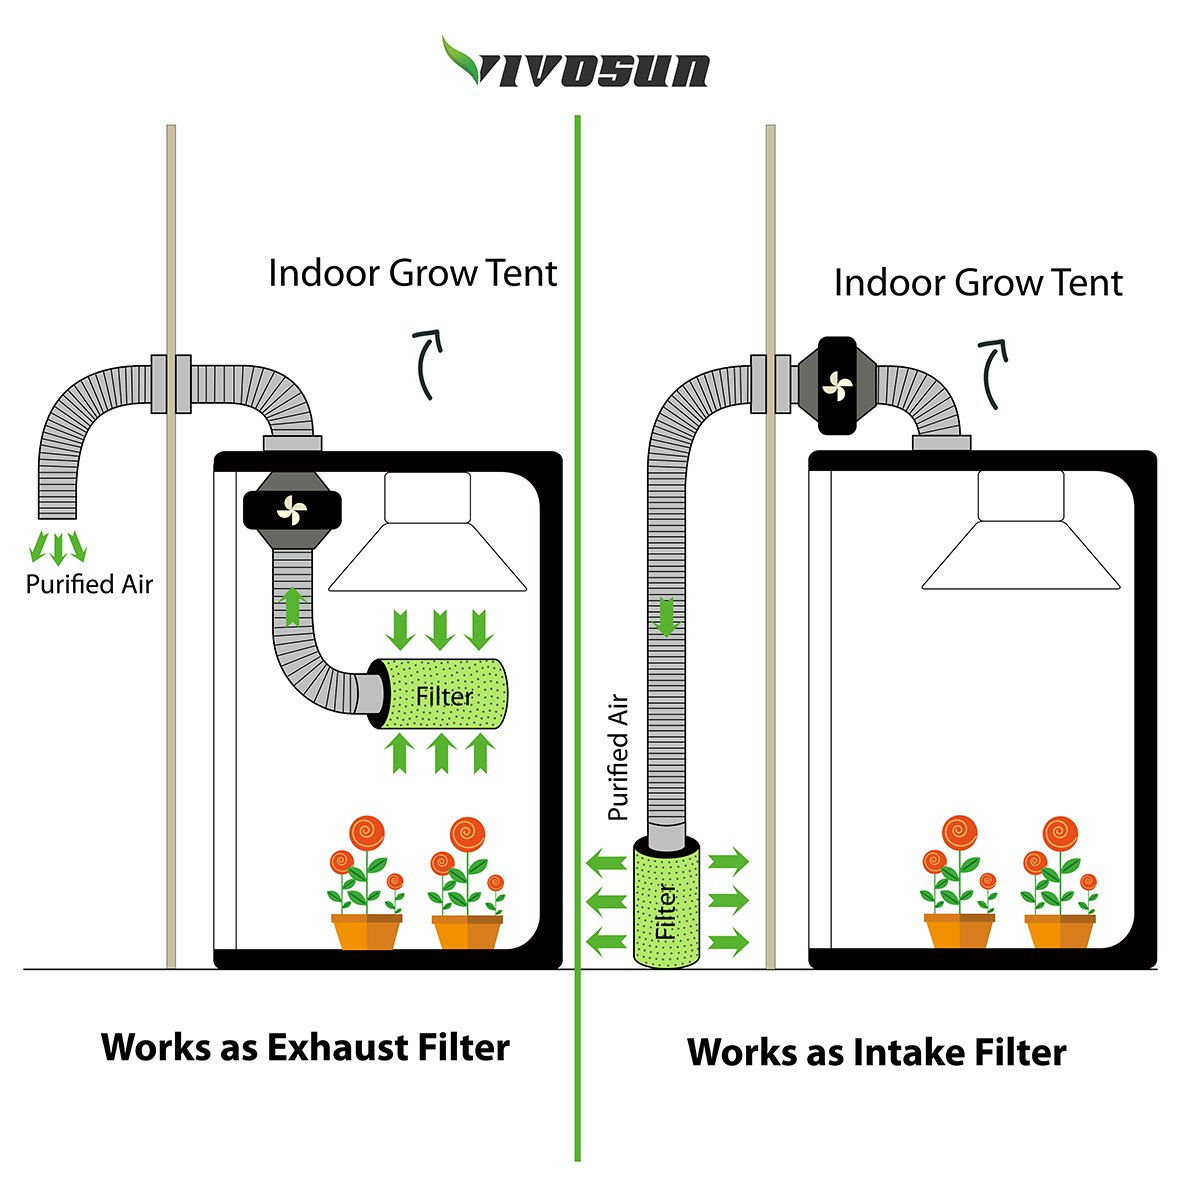 Amazon.com  VIVOSUN 8 Inch Air Carbon Filter Odor Control with Australia Virgin Charcoal for Inline Fan Pre-filter Included Reversible Flange  Garden u0026 ...  sc 1 st  Amazon.com & Amazon.com : VIVOSUN 8 Inch Air Carbon Filter Odor Control with ...